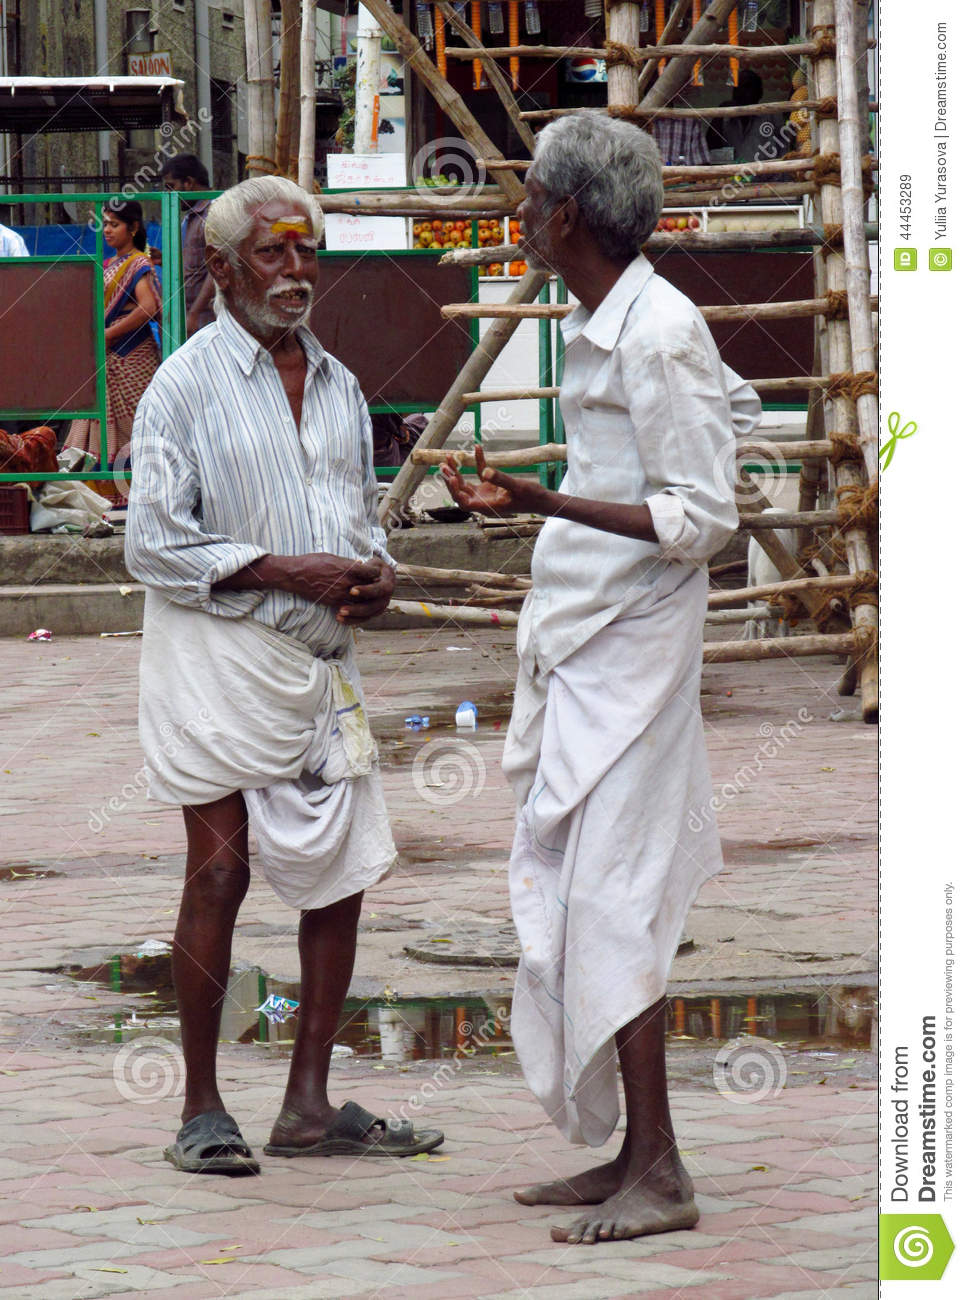 street hindu single men Free classified ads for women seeking men and everything else find what you are looking for or create your own ad for free.